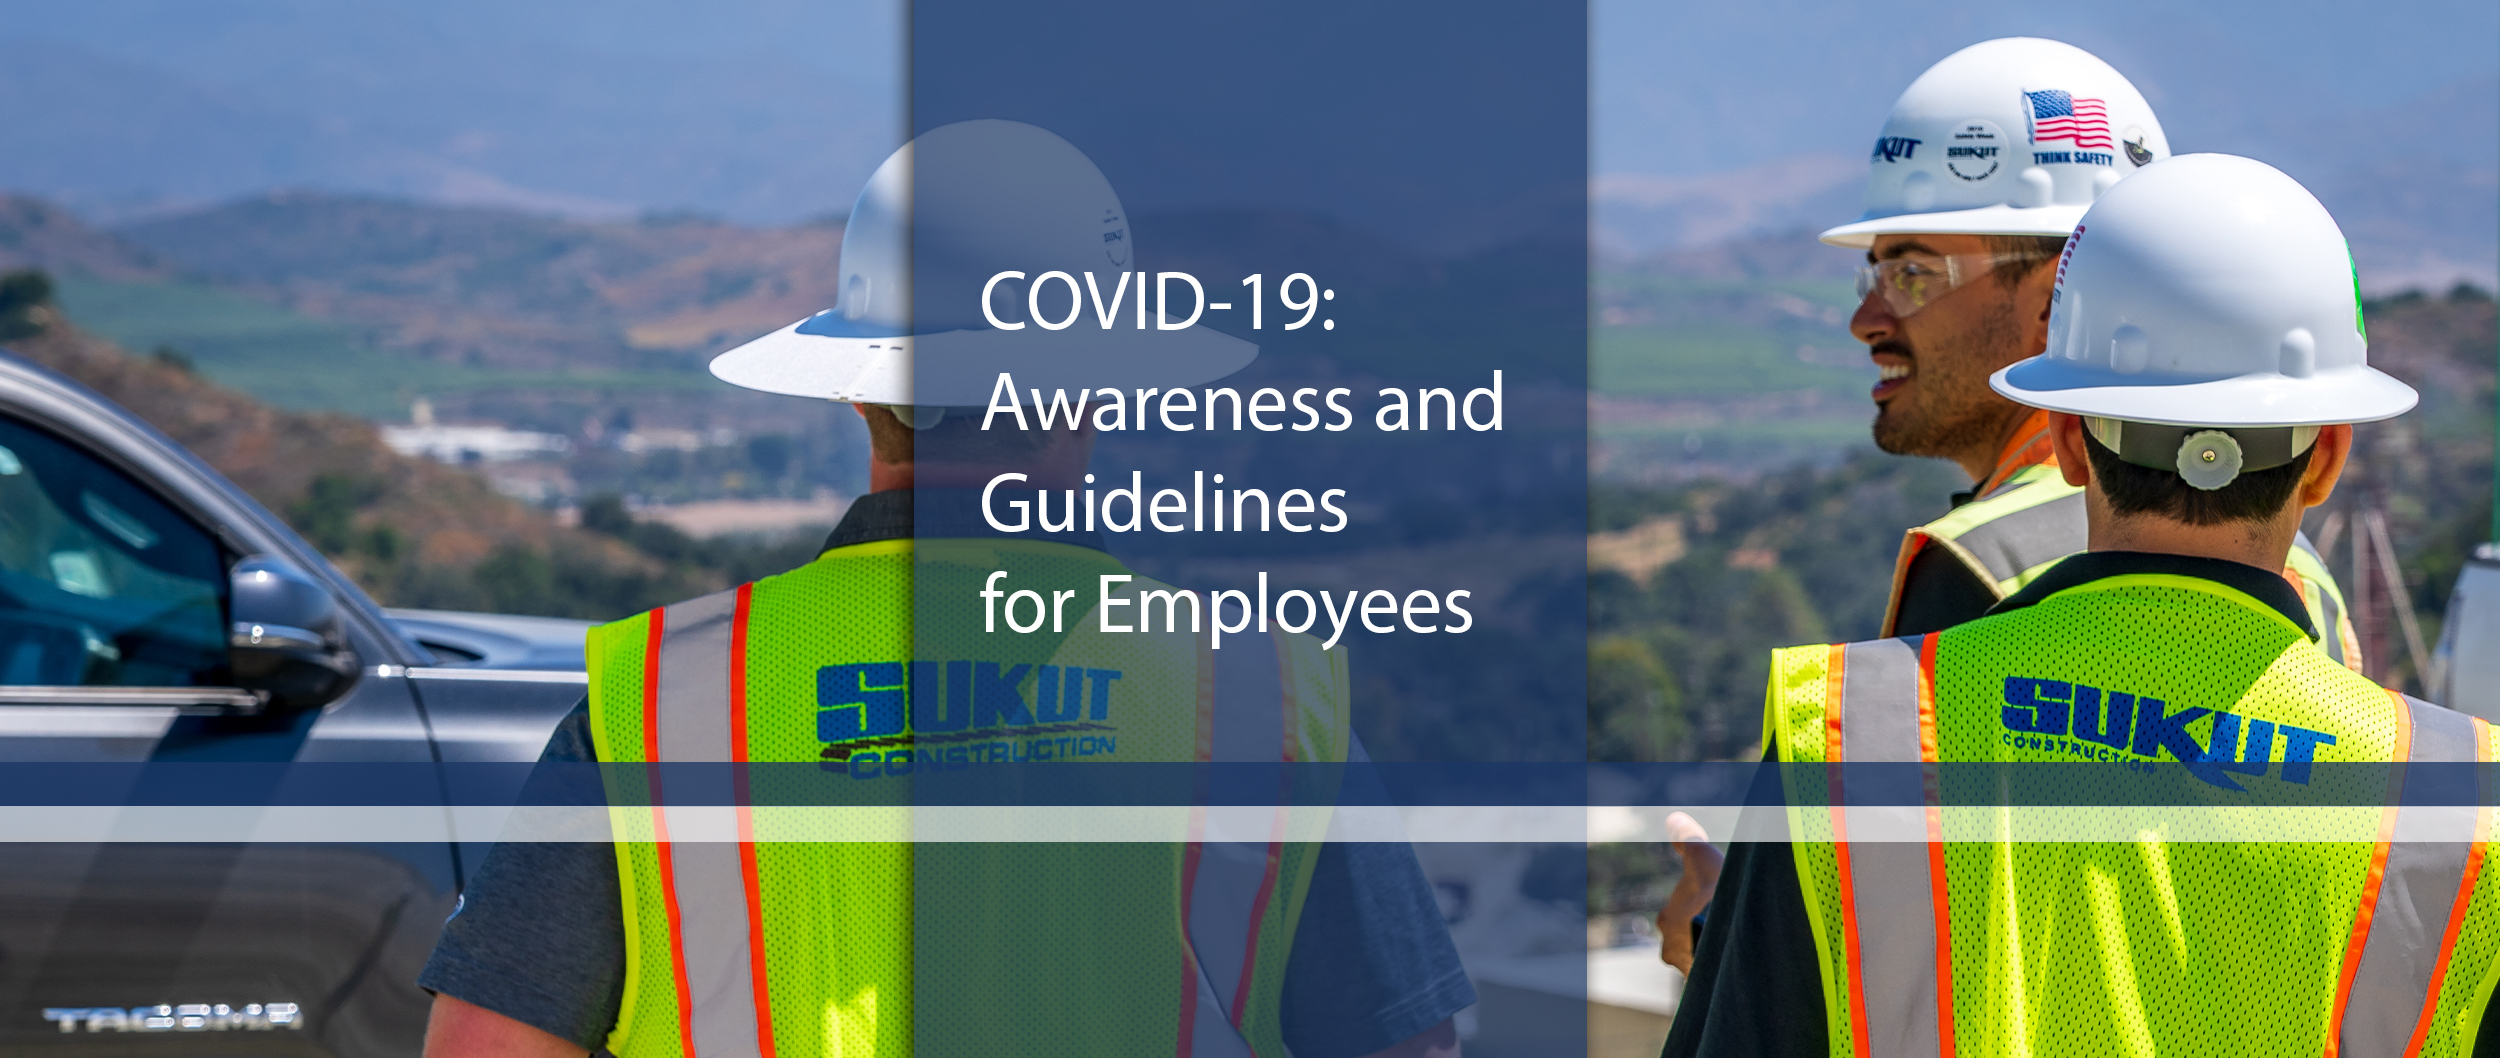 Protected: COVID-19: Awareness and Guidelines for Employees